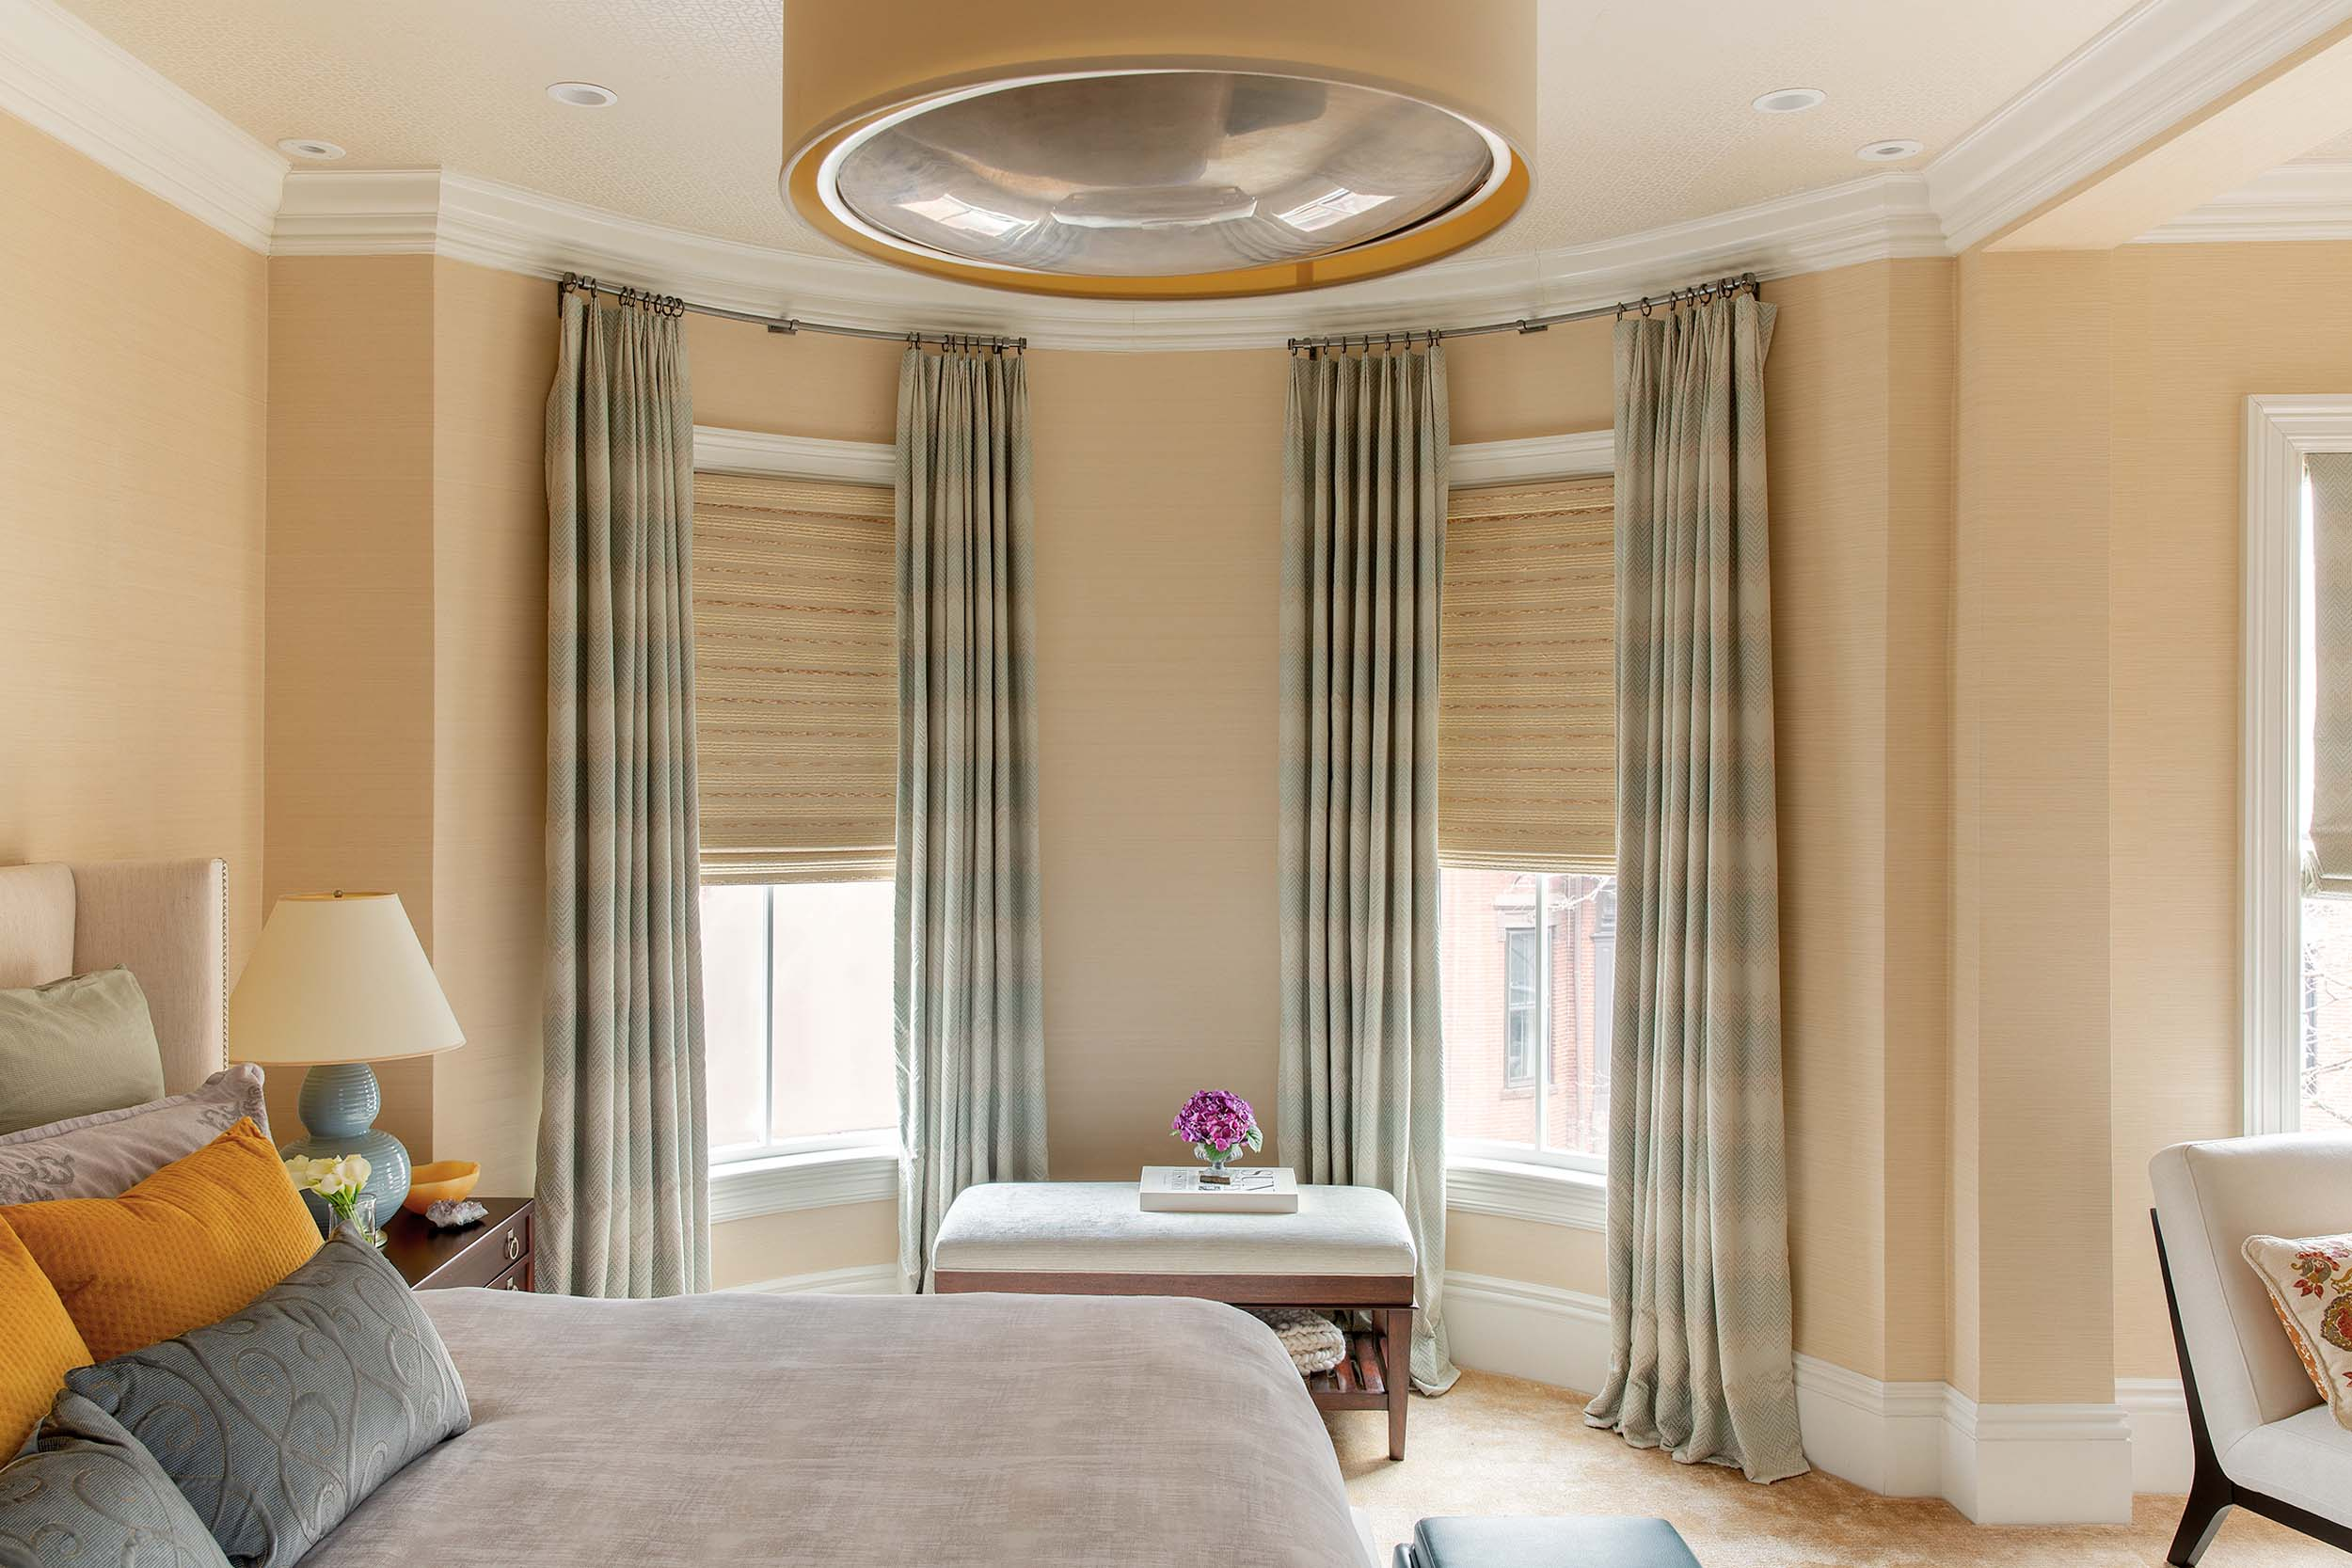 2-Transitional-Contemporary-Top-Bedroom-ideas-Decorator-Best-Interior-Designers-Boston-South-End-Back-Bay-Cambridge-Dane-Austin-Design.jpg